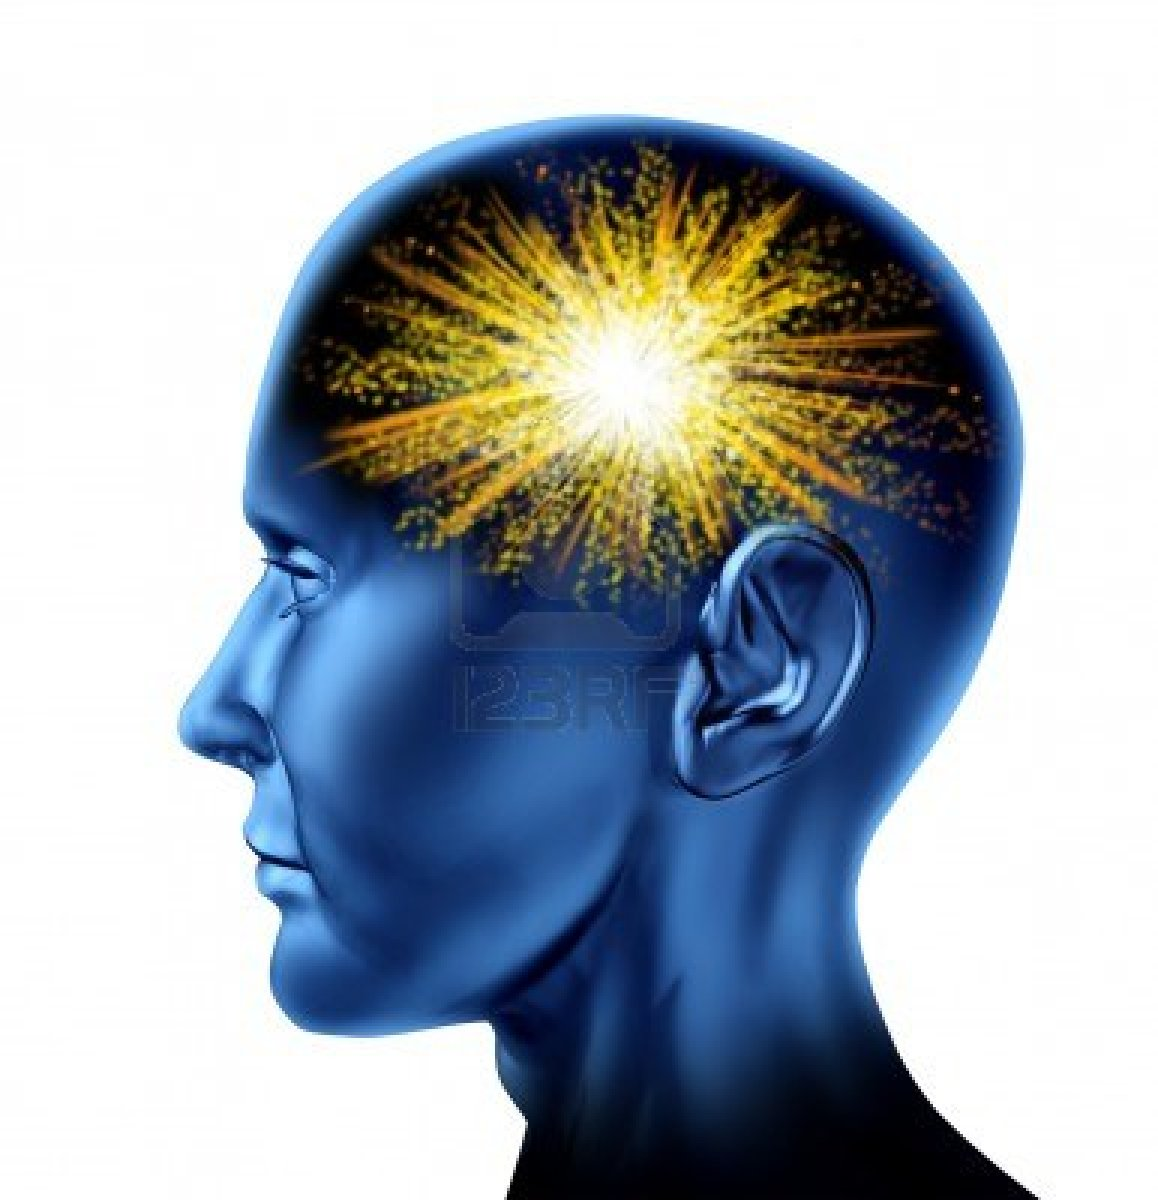 14119619-spark-of-genius-in-the-human-brain-as-a-symbol-of-invention-and-wisdom-of-creative-thinking